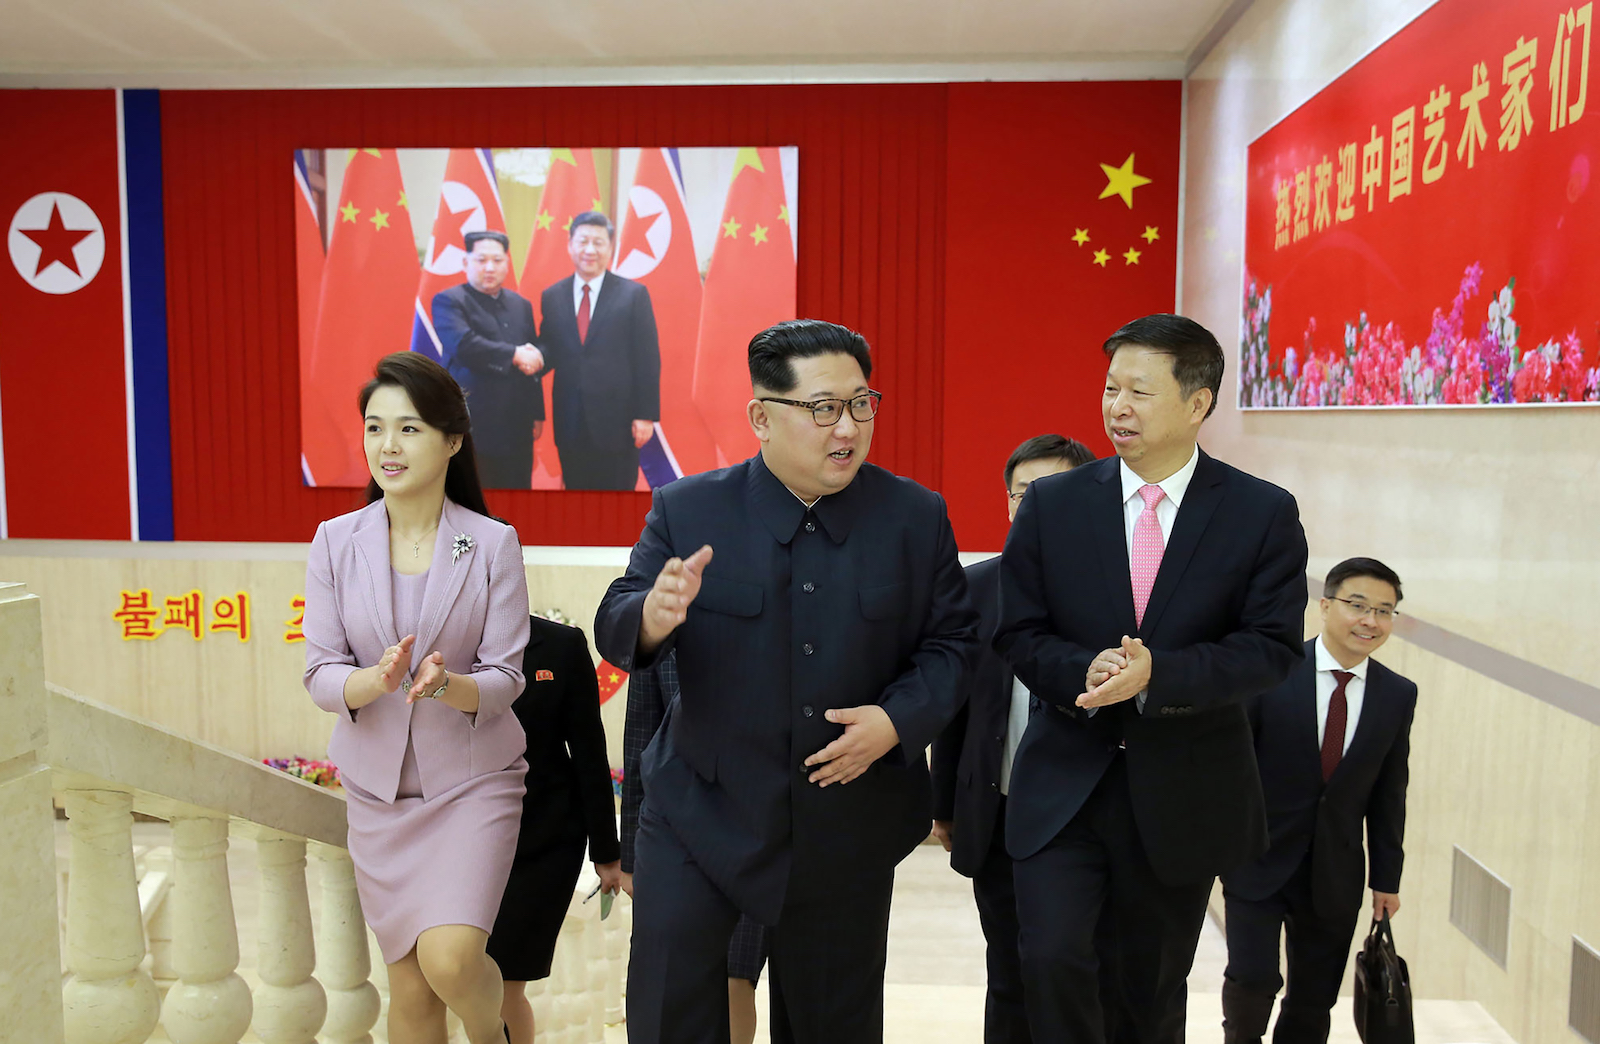 What China wants from North KoreaBeijing's desire for stability has played a bigger role than recognized in Kim Jong-un's volte-face decision to negotiate his nuclear position